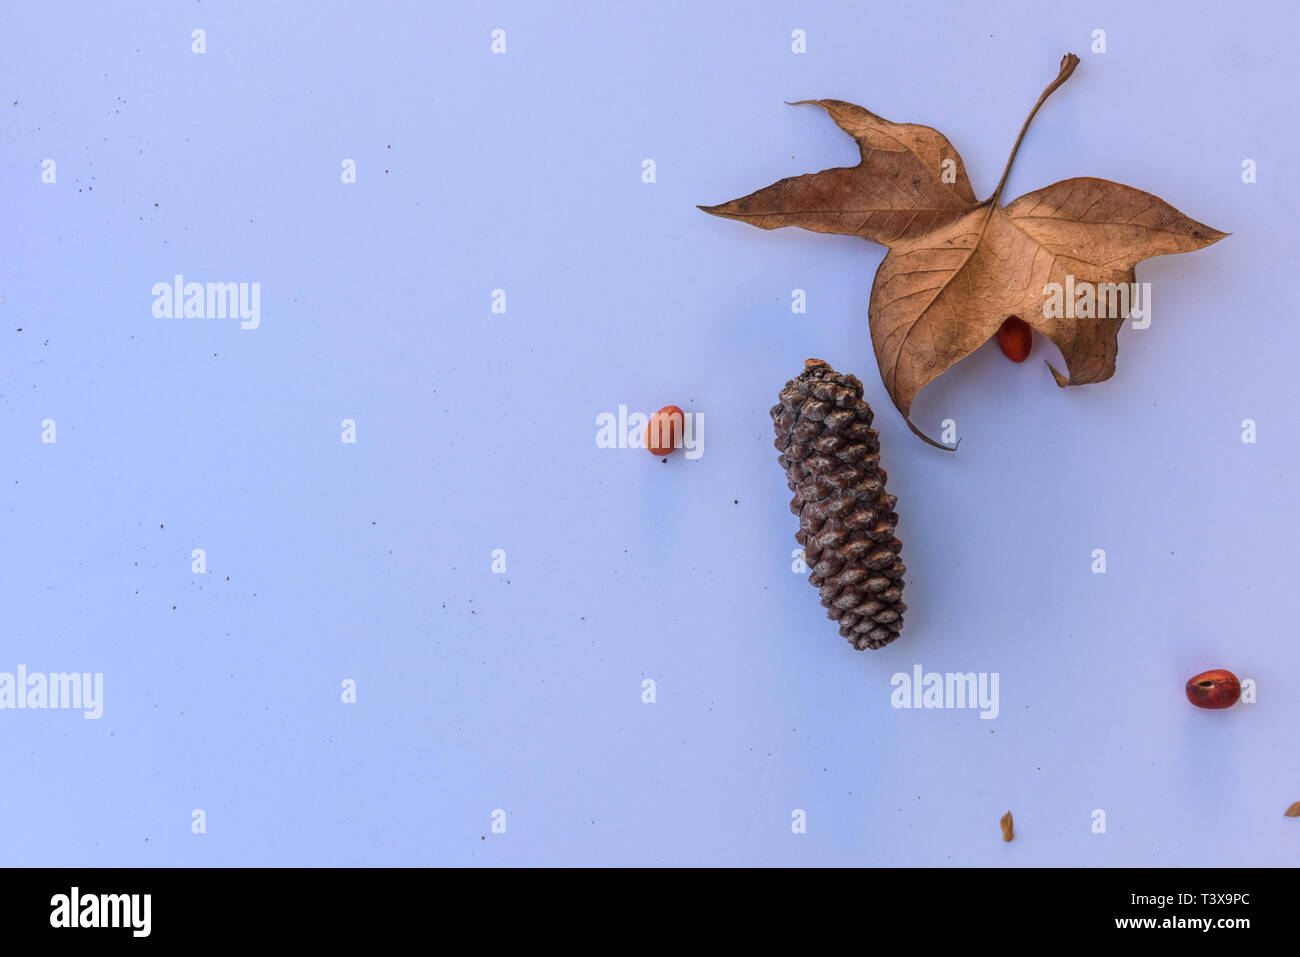 Botanical still life of leaves, pine cones, plants and berries in brown tones against white background. - Stock Image